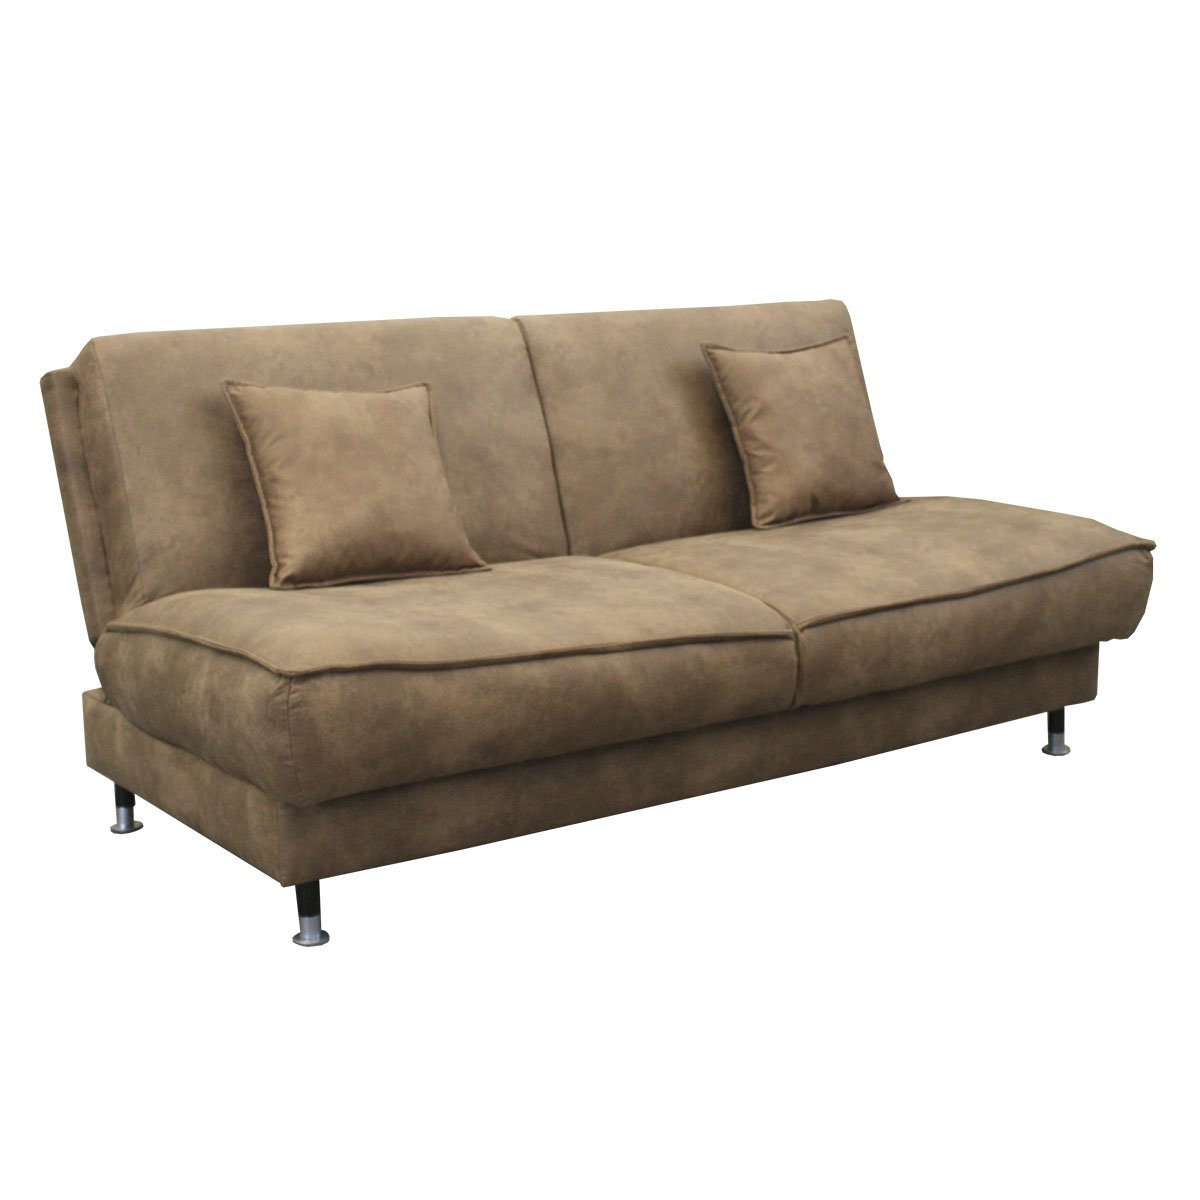 sofa cama sofas camas sofa brownsvilleclaimhelp thesofa